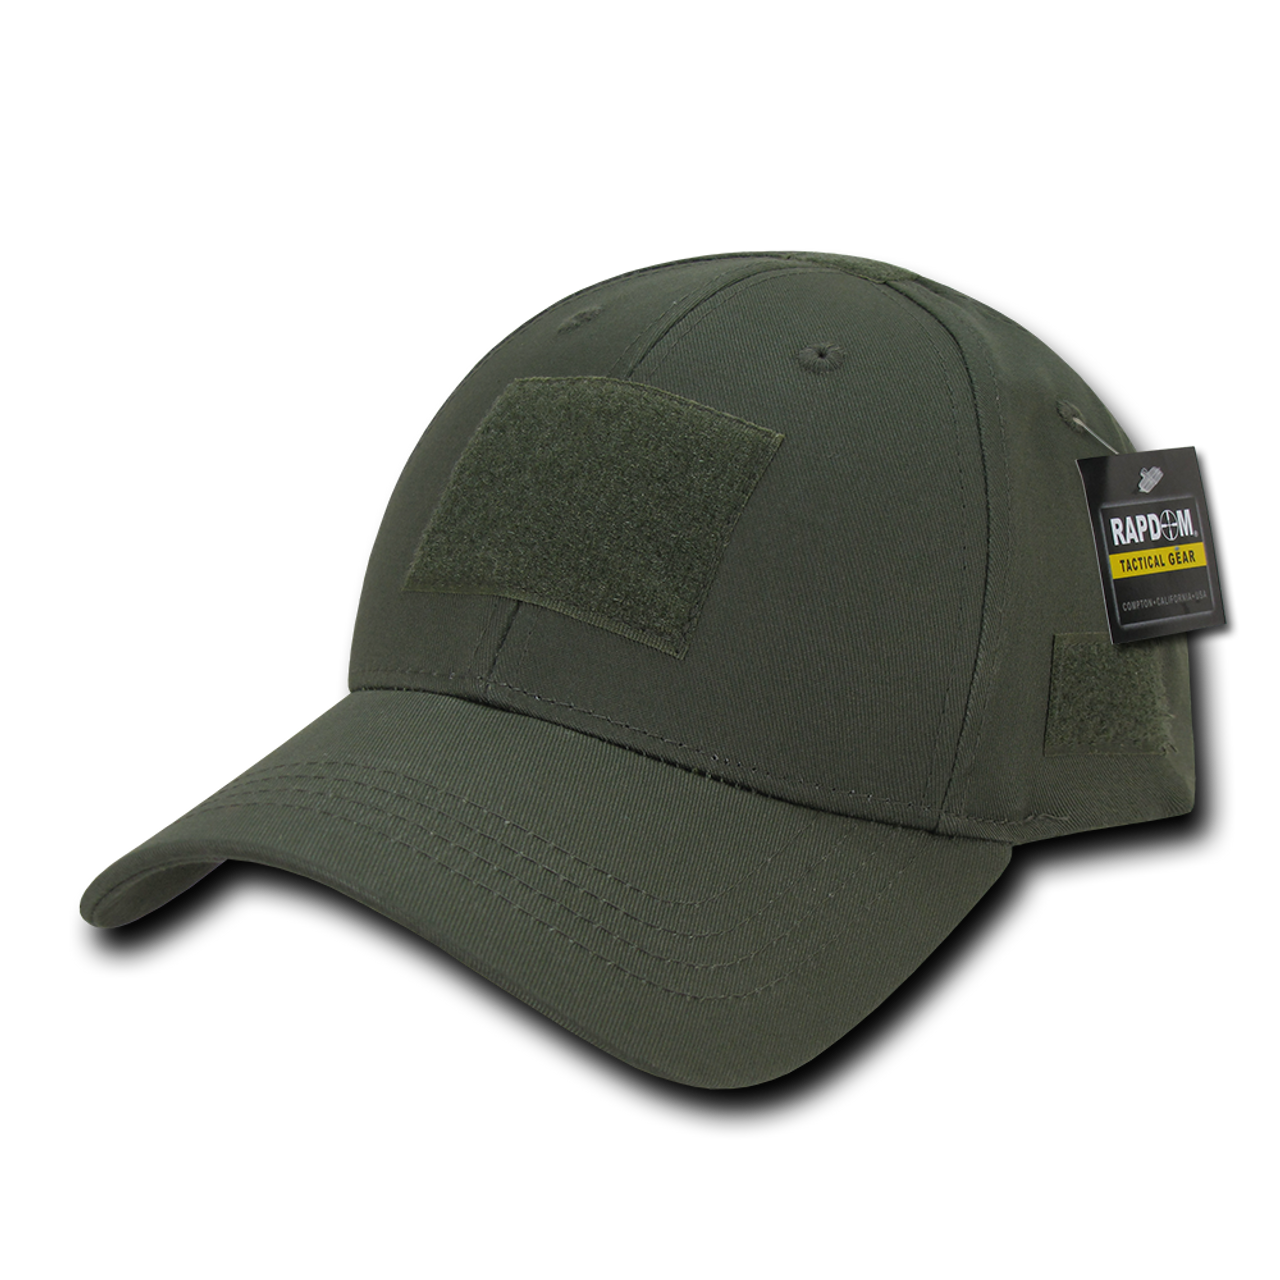 T78 - Tactical Cap - Low Crown Structured Cotton - Olive Drab -  USMILITARYHATS.COM c1799fdf8a82